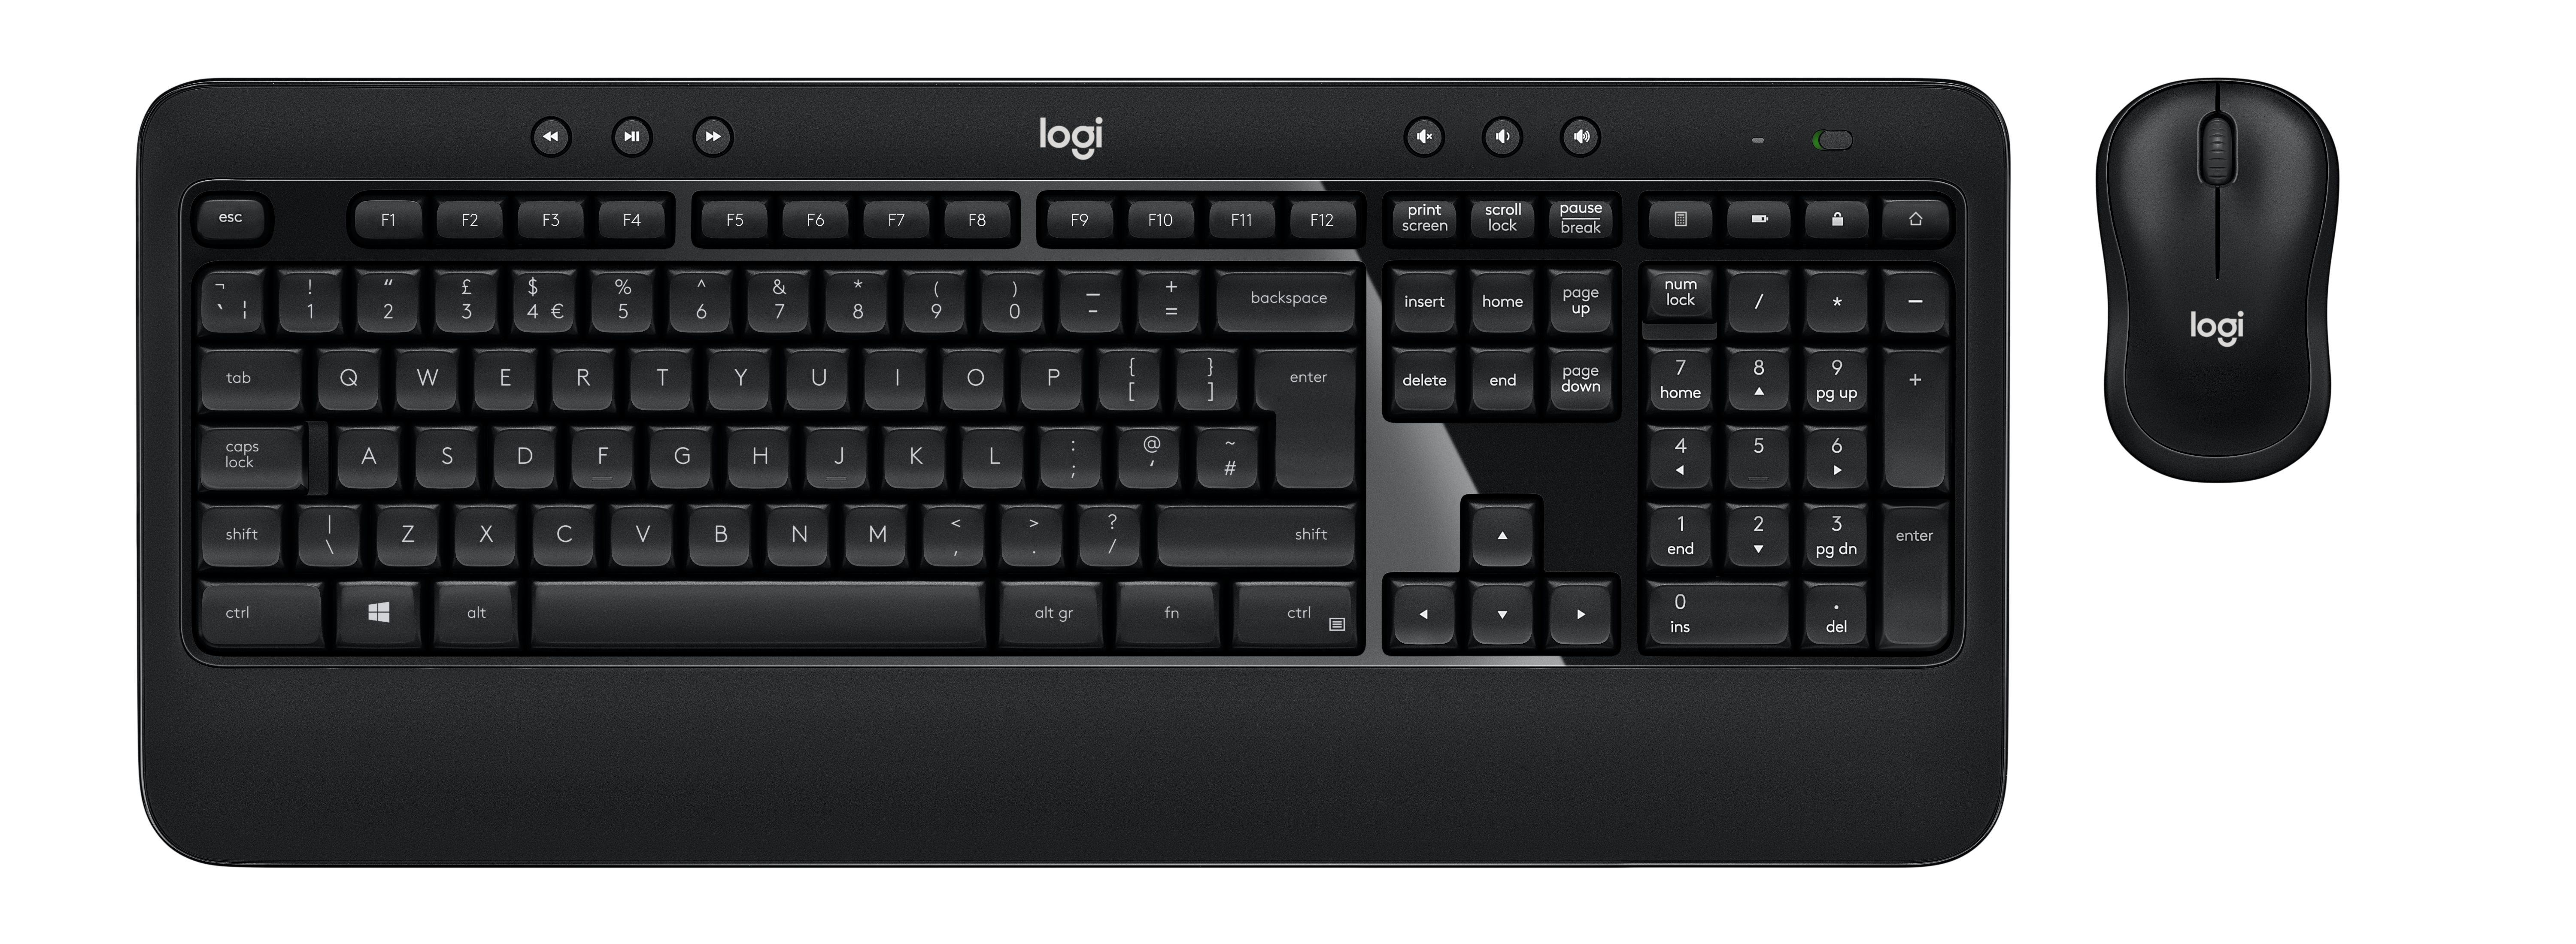 2044513-Logitech-Advanced-Combo-Keyboard-and-mouse-set-backlit-wireless